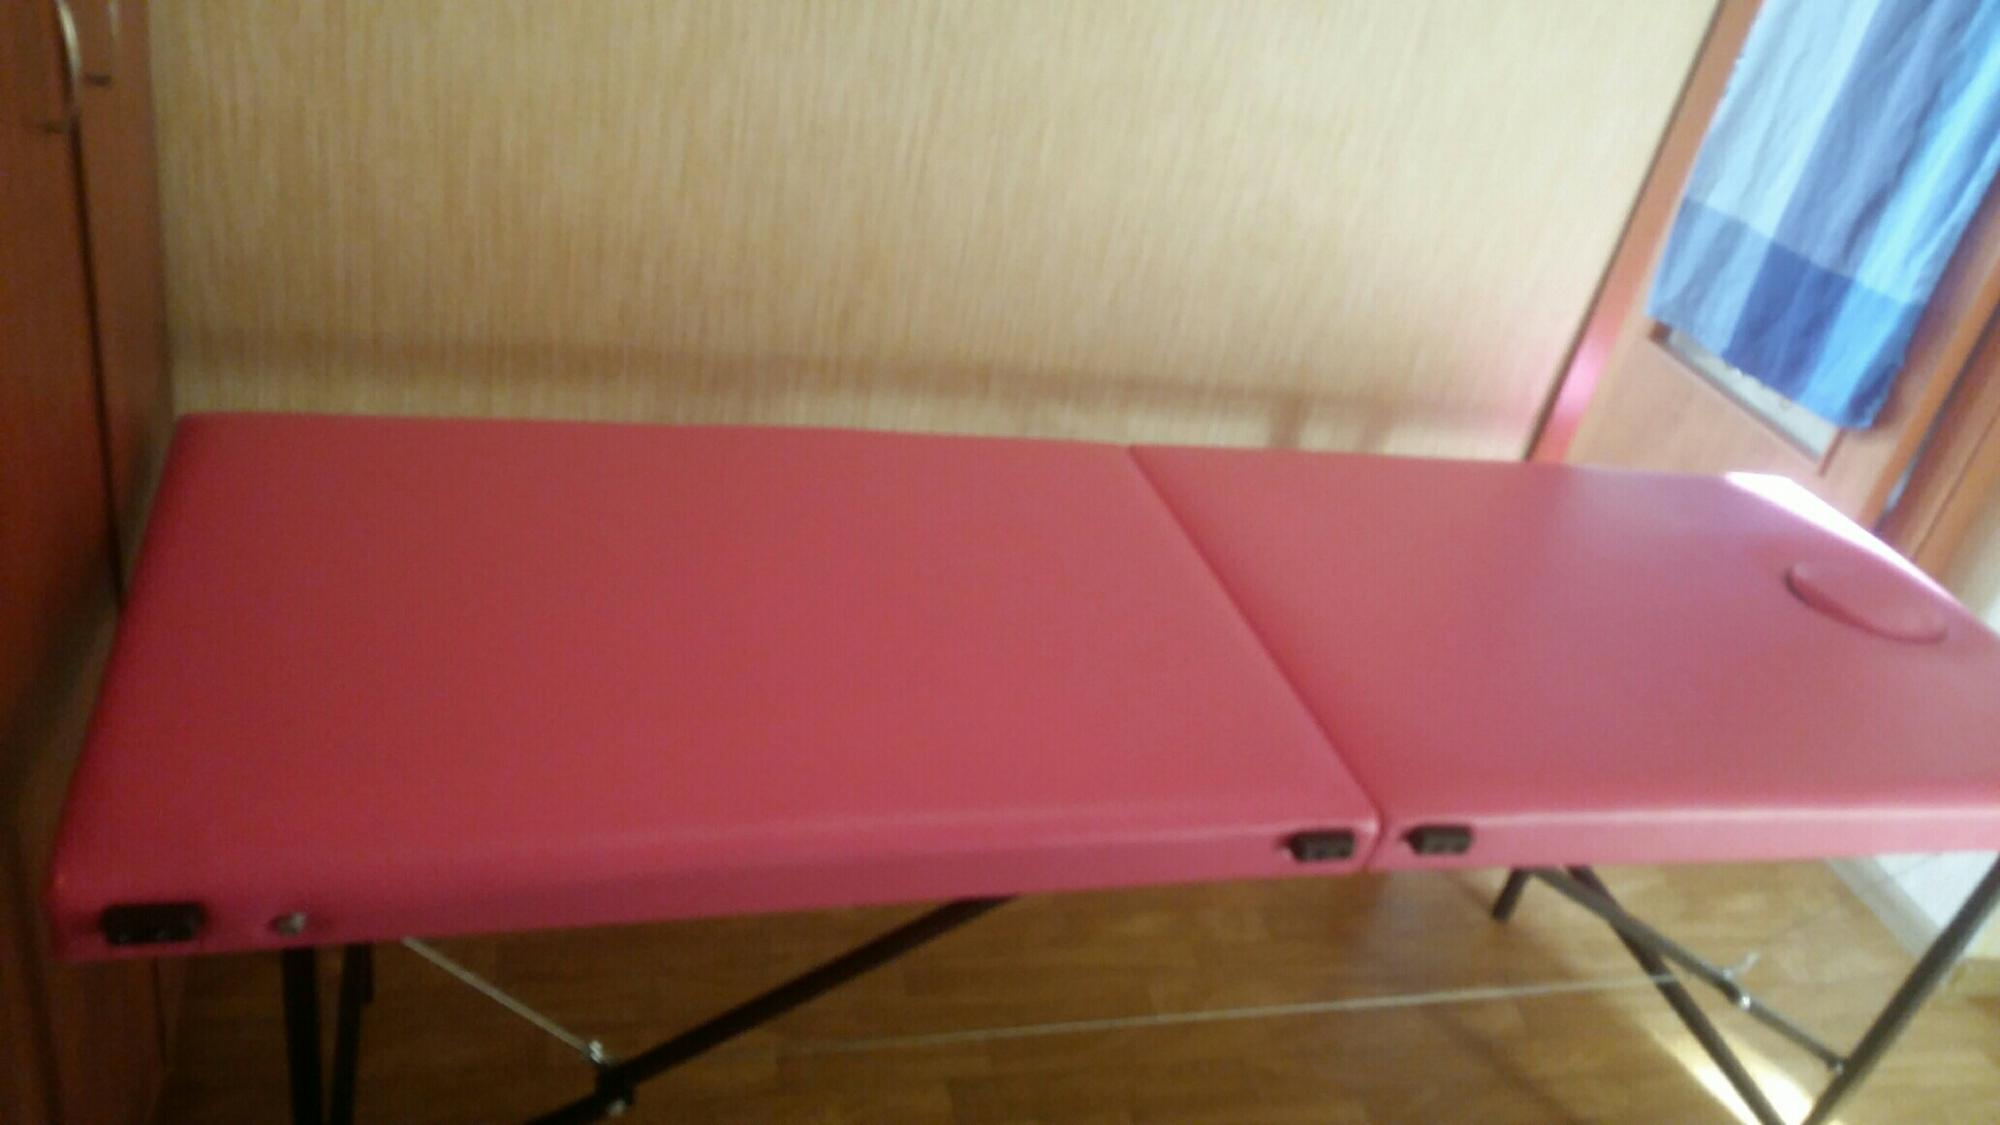 Massage table in Moscow buy 1